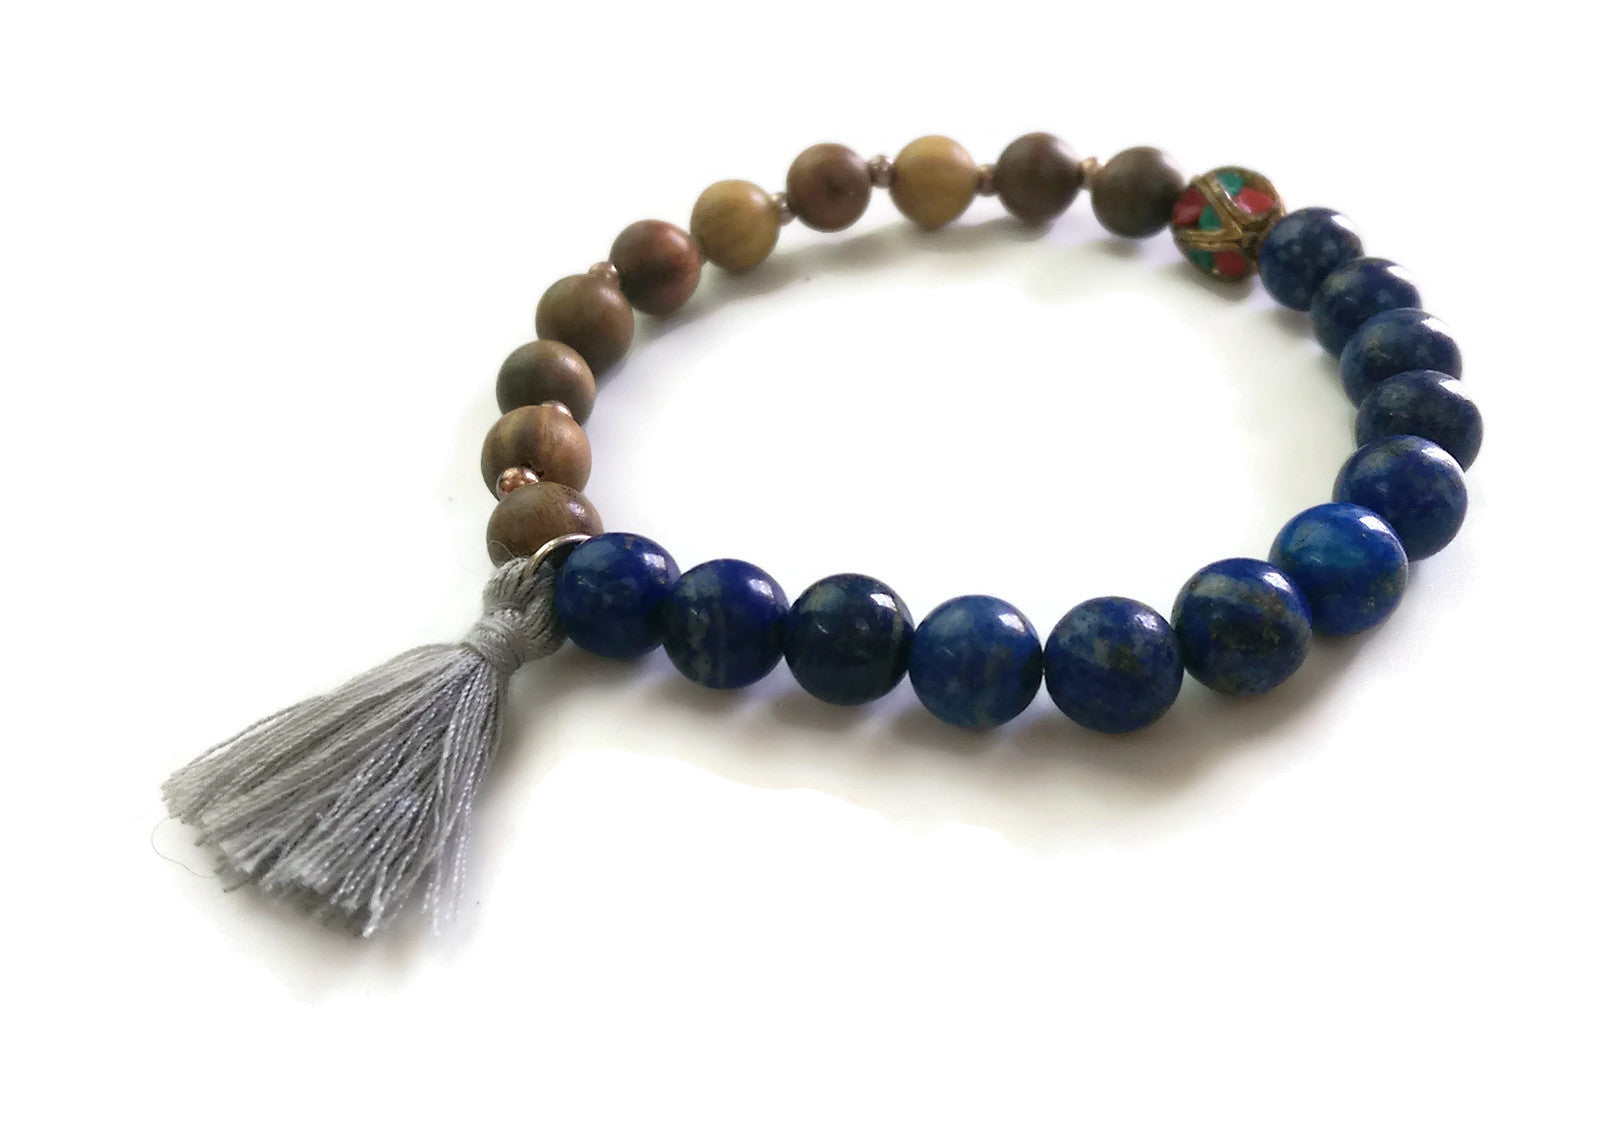 Nepal Chakra Collection 8mm Green Sandalwood Lapis Lazuli Bead Wrist Mala Stretch Bracelet Stackable Focus Yoga Meditation Third Eye Chakra